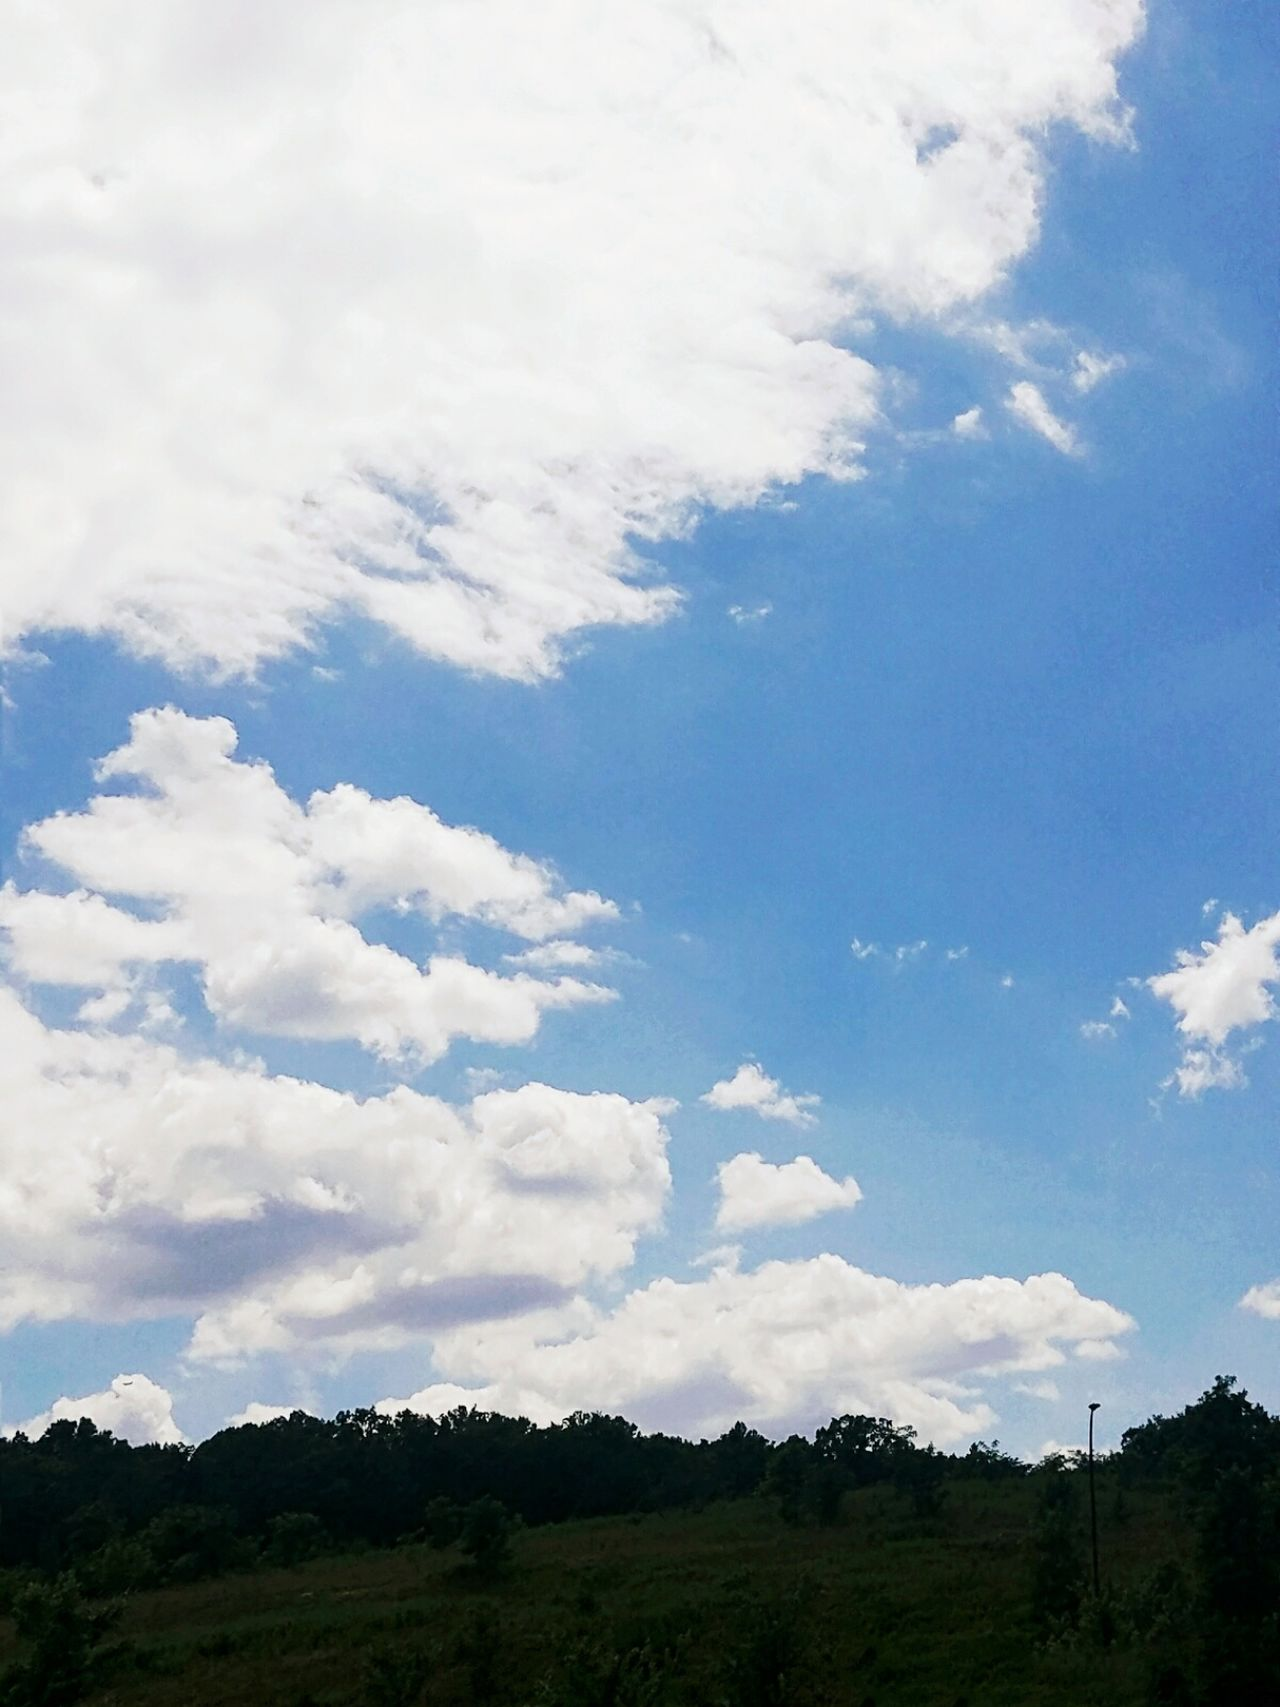 Color Palette Clouds And Sky Cloud Cloud_collection  Cloudporn Cloudy Skies Cloudscape Clouds Collection Cloudlovers Blue Sky Blue Sky And Clouds Blue And White Blue Skies Enjoying Life Stilllearning LoveOneAnother Bekind Taking Photos ❤ Be Happy And Enjoy The Little Things Nature_collection Nature Photography Enjoying What I Do Still Learning